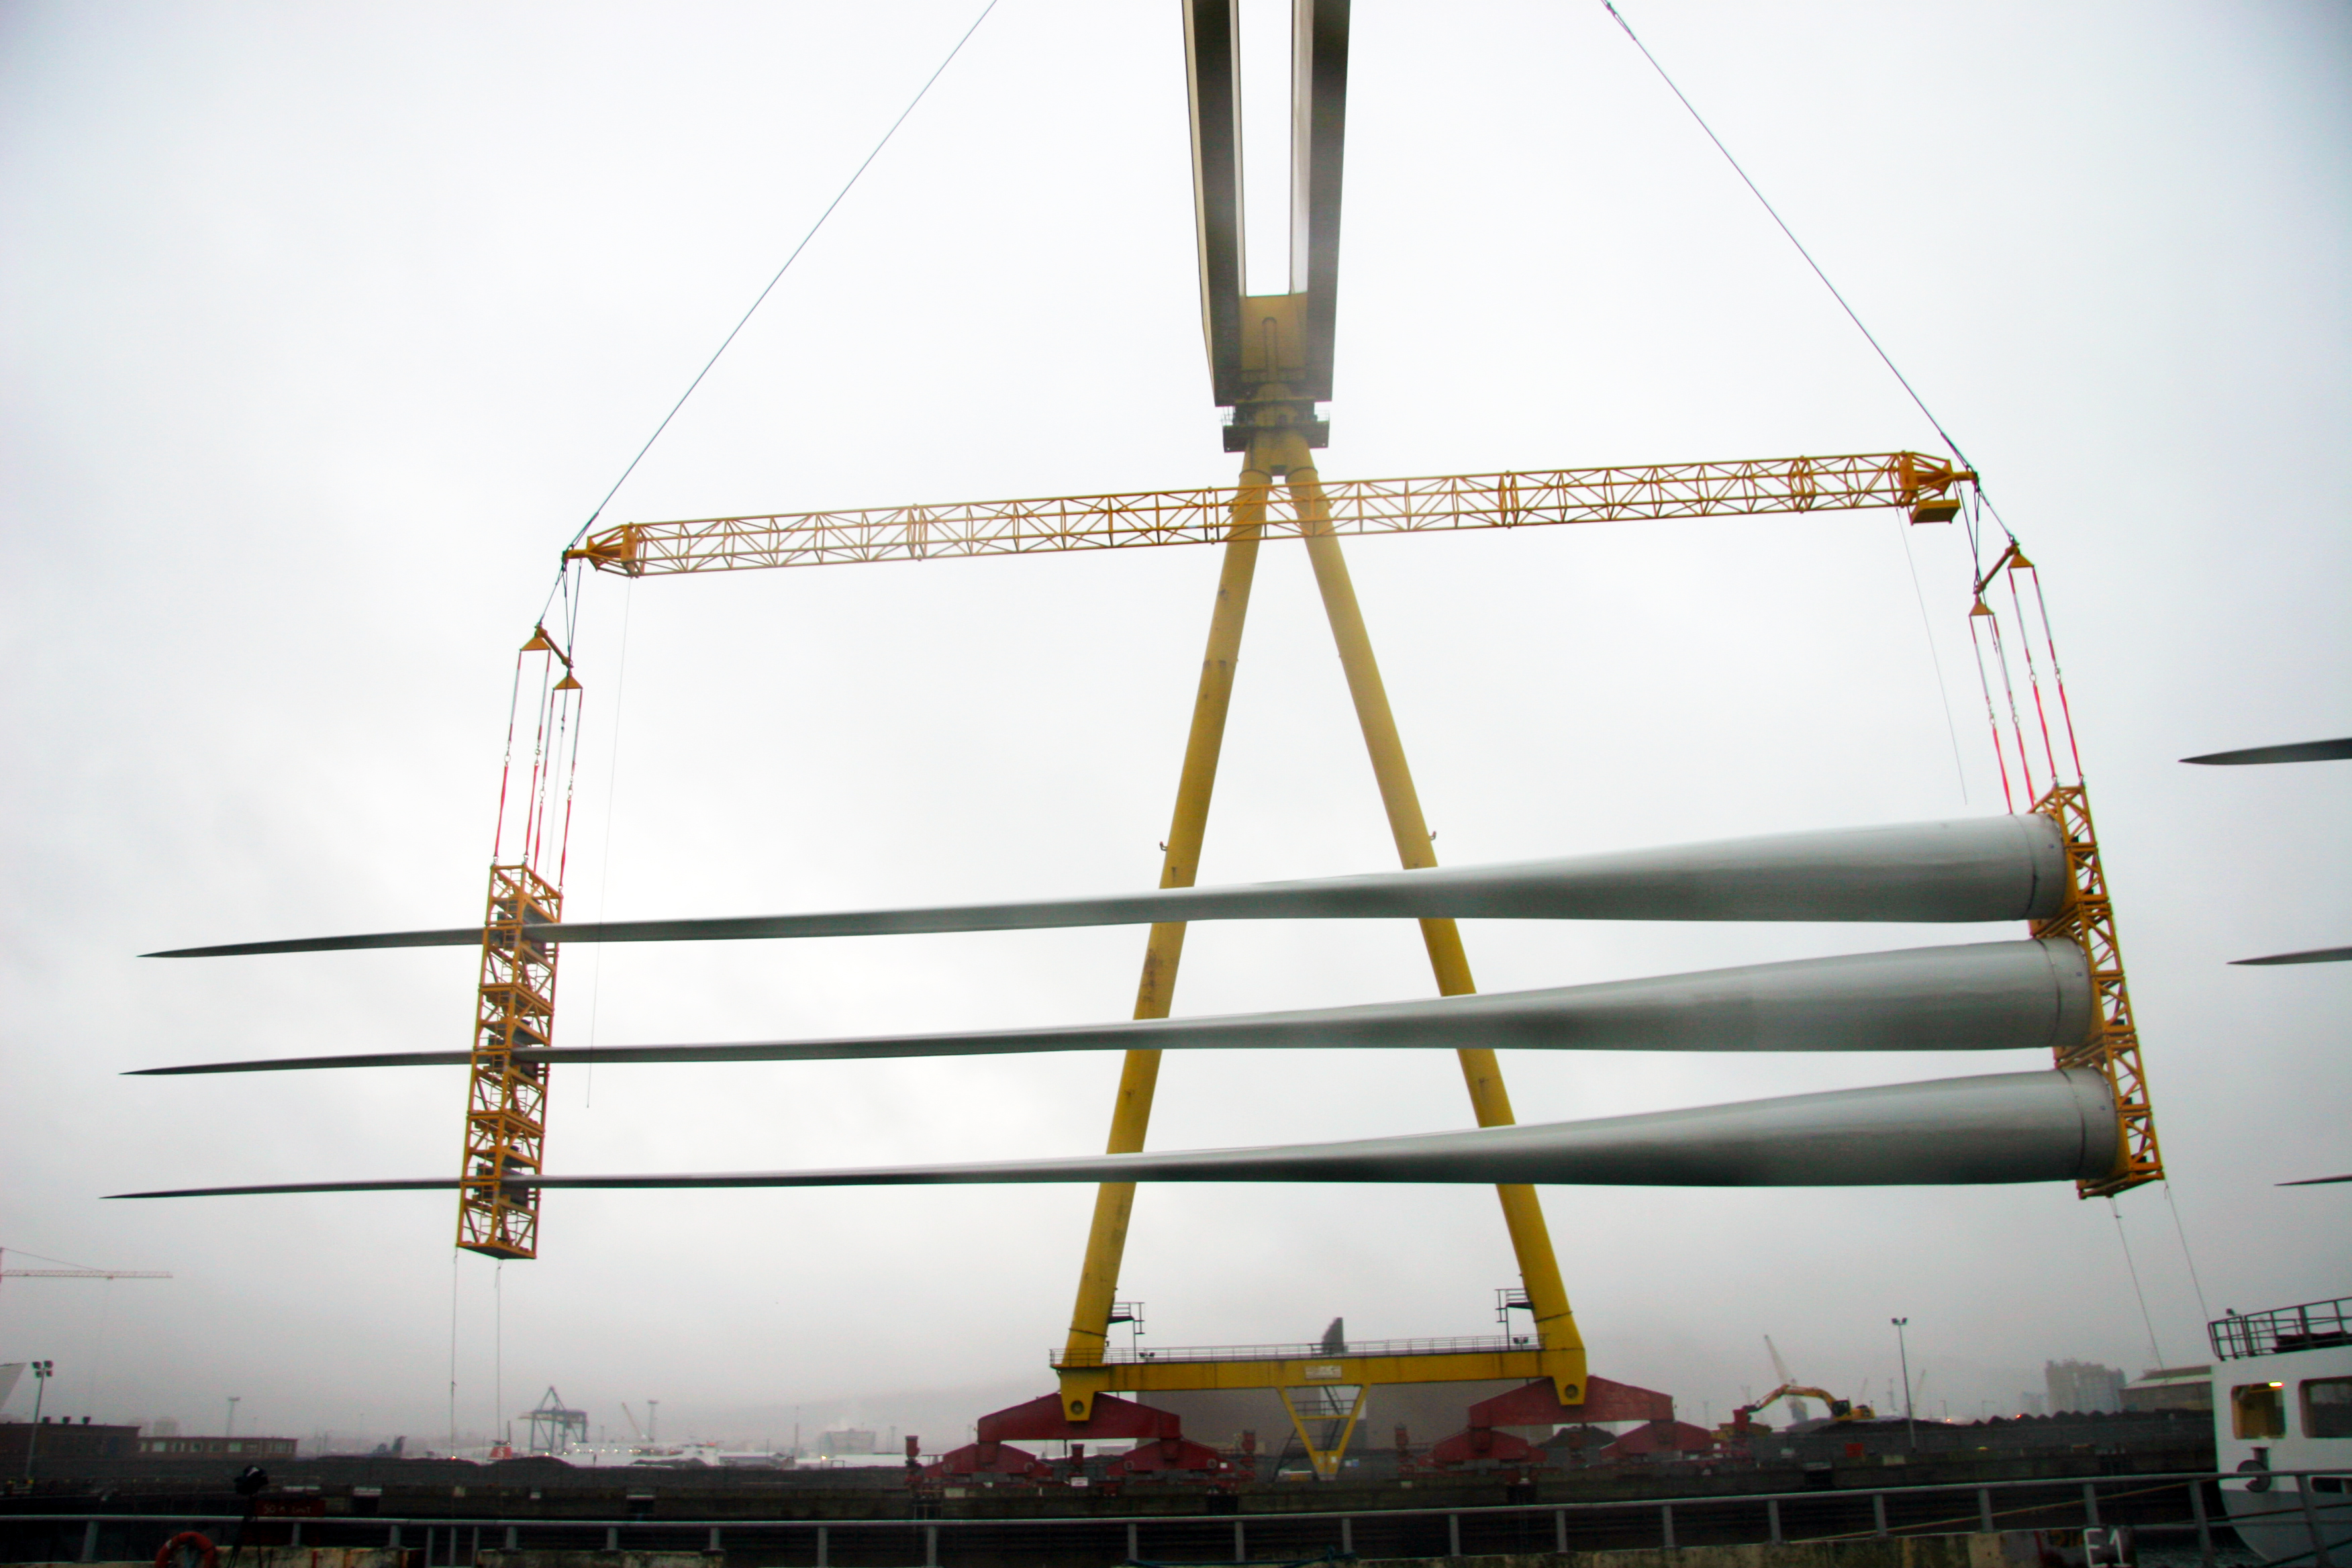 Modulift Lattice Beam over two spreader beams lifting parts of a wind turbine